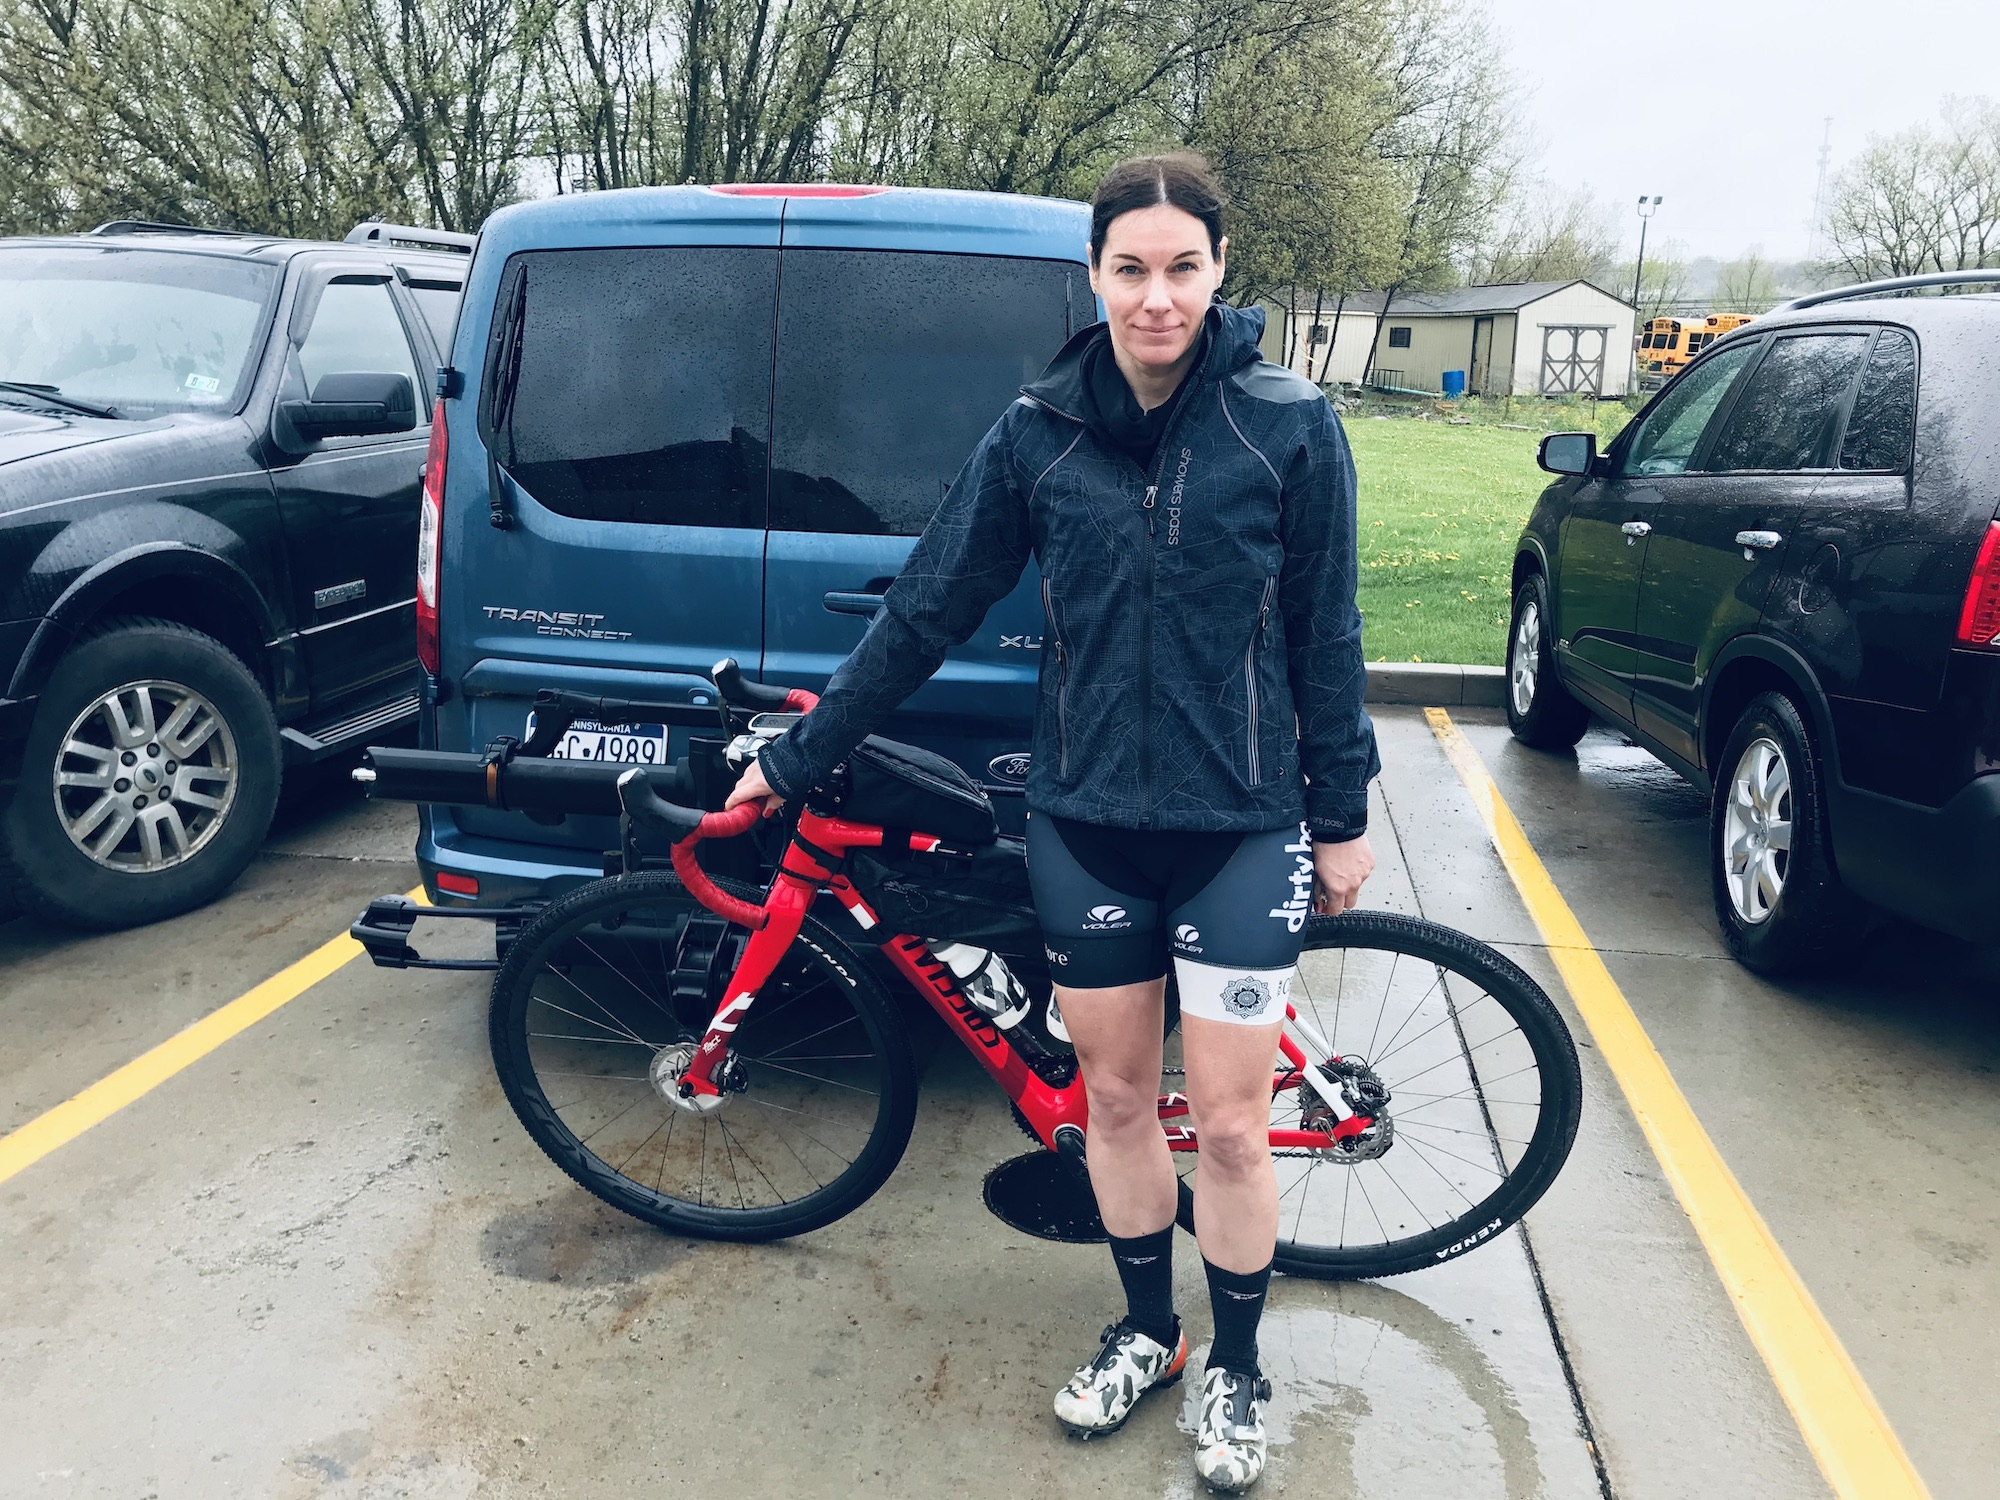 Rachel Weaver is pictured with her bike in a parking lot